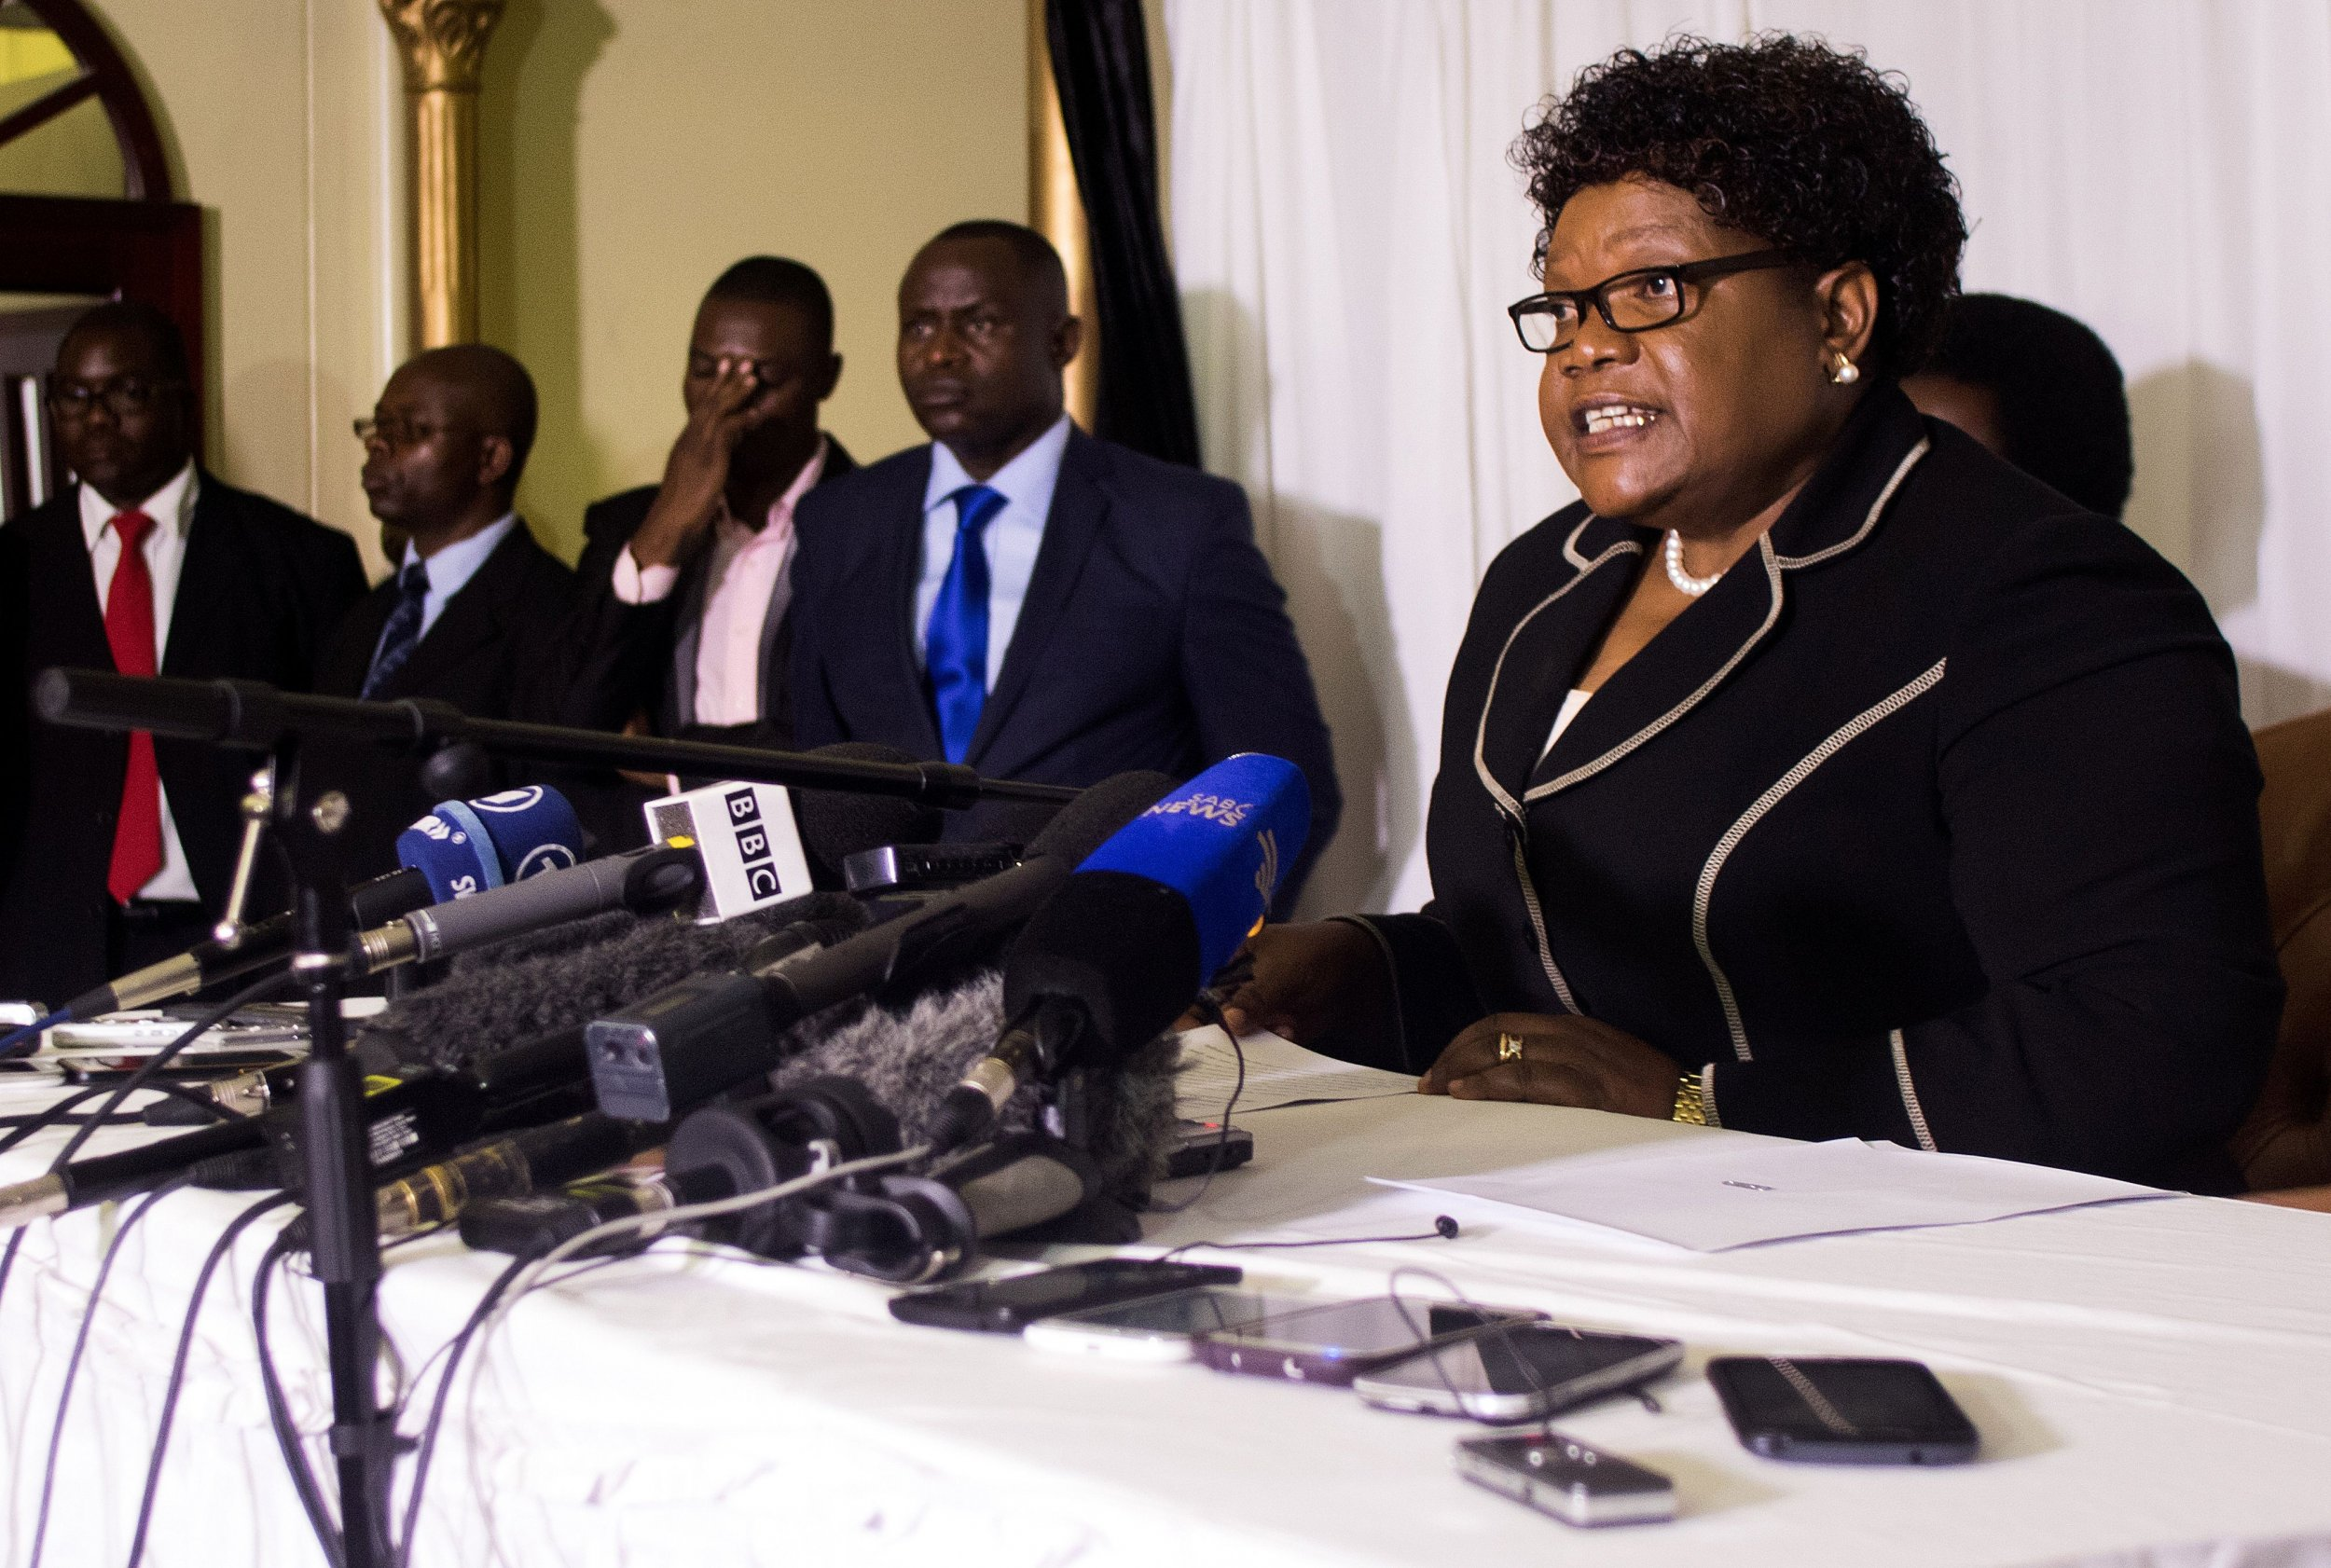 Joice Mujuru launches a new political party in Zimbabwe to challenge Robert Mugabe.